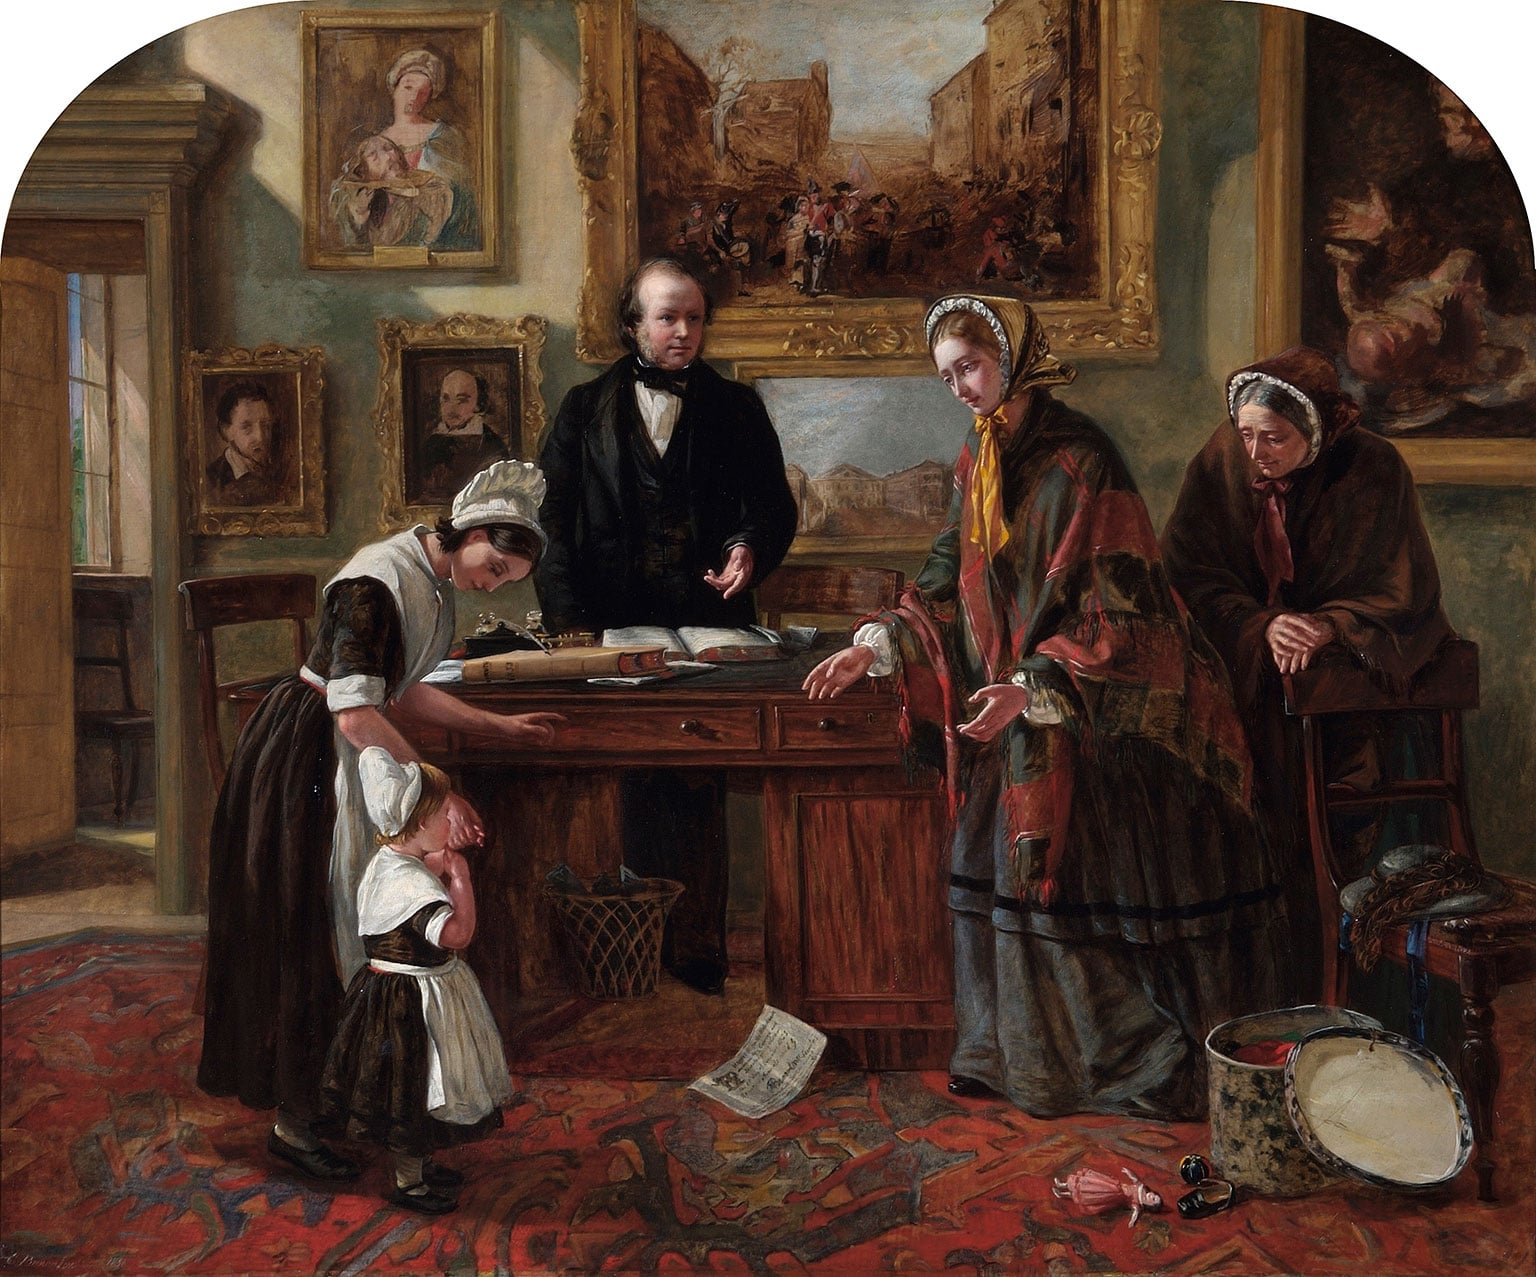 5. Emma Brownlow, The Foundling Restored to its Mother, 1858 - Coram in the care of the Foundling Museum